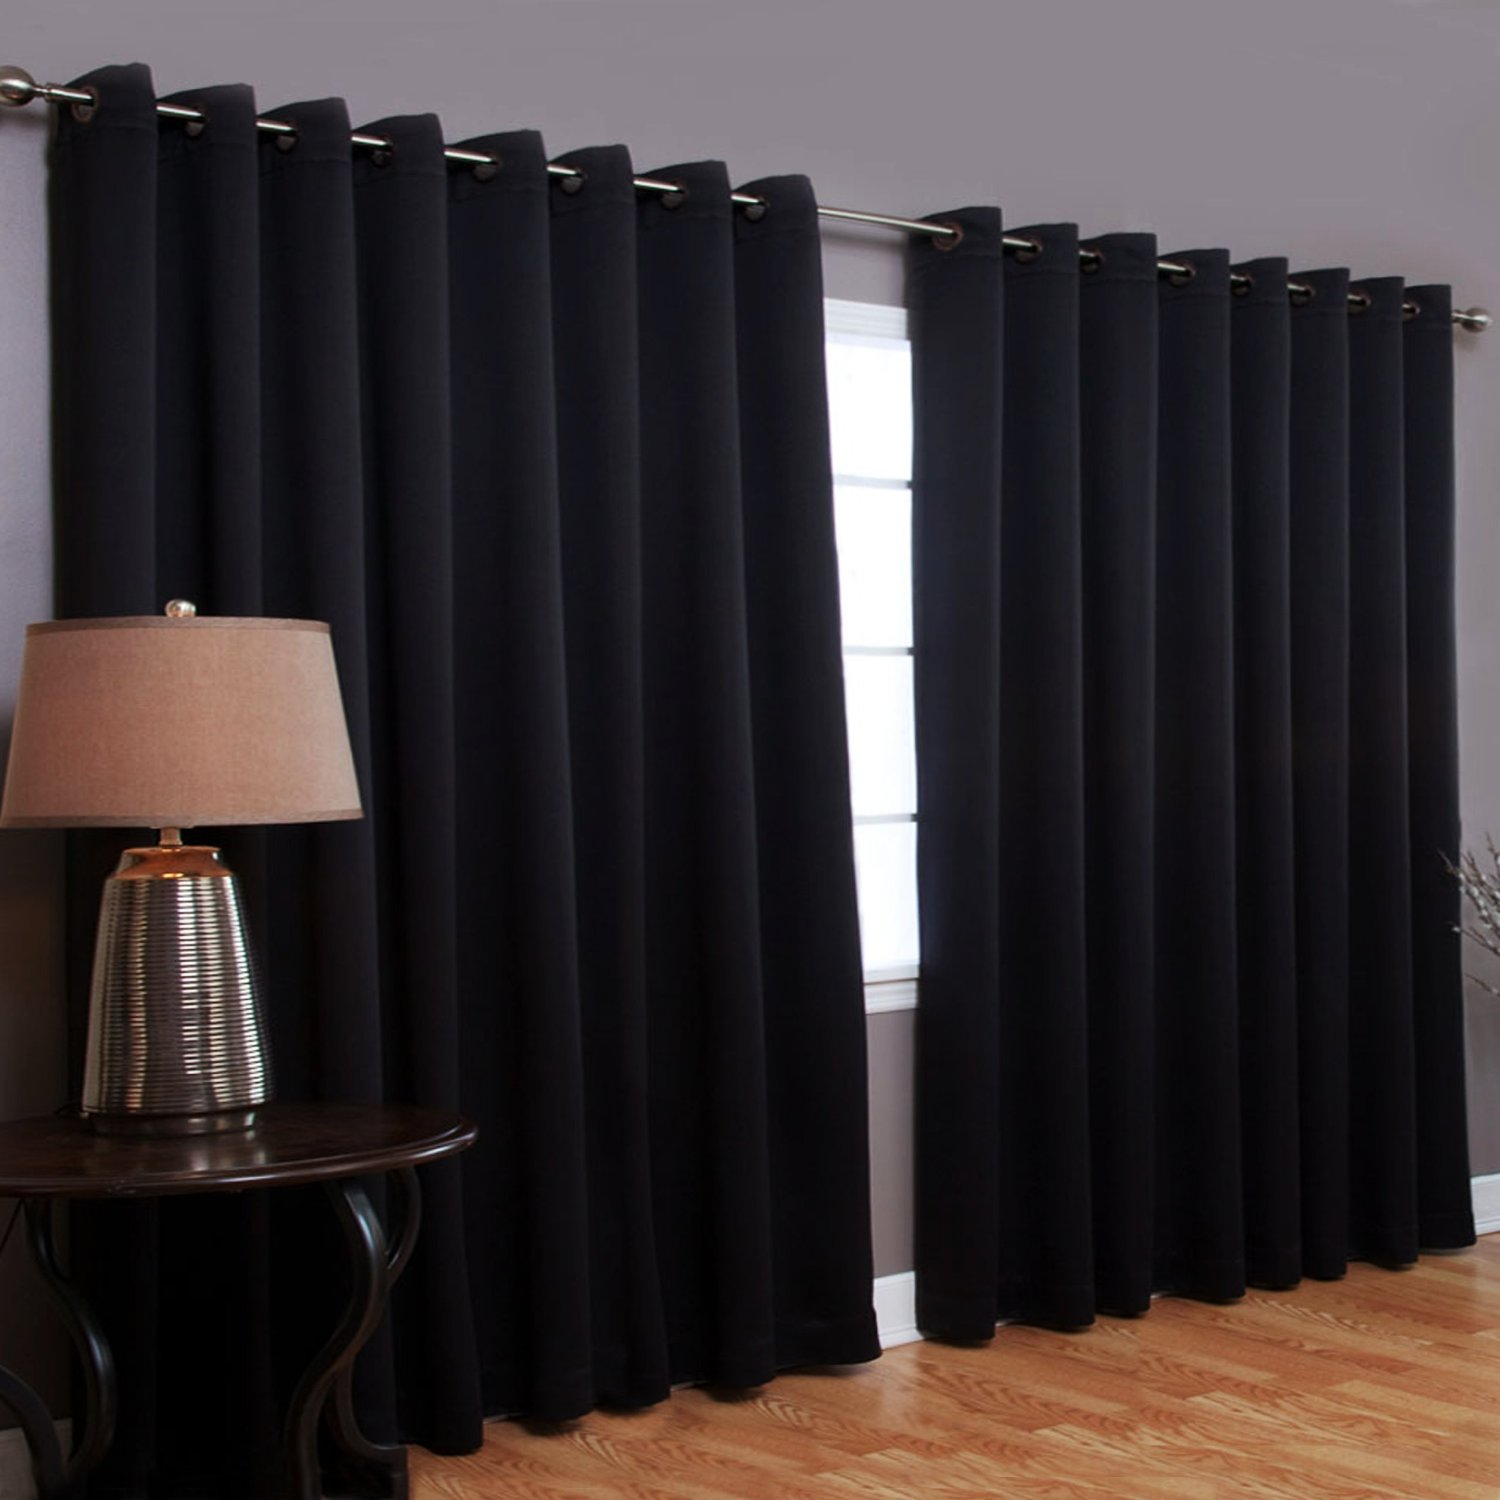 Black And White Stripped Curtains Best Thermal Curtains